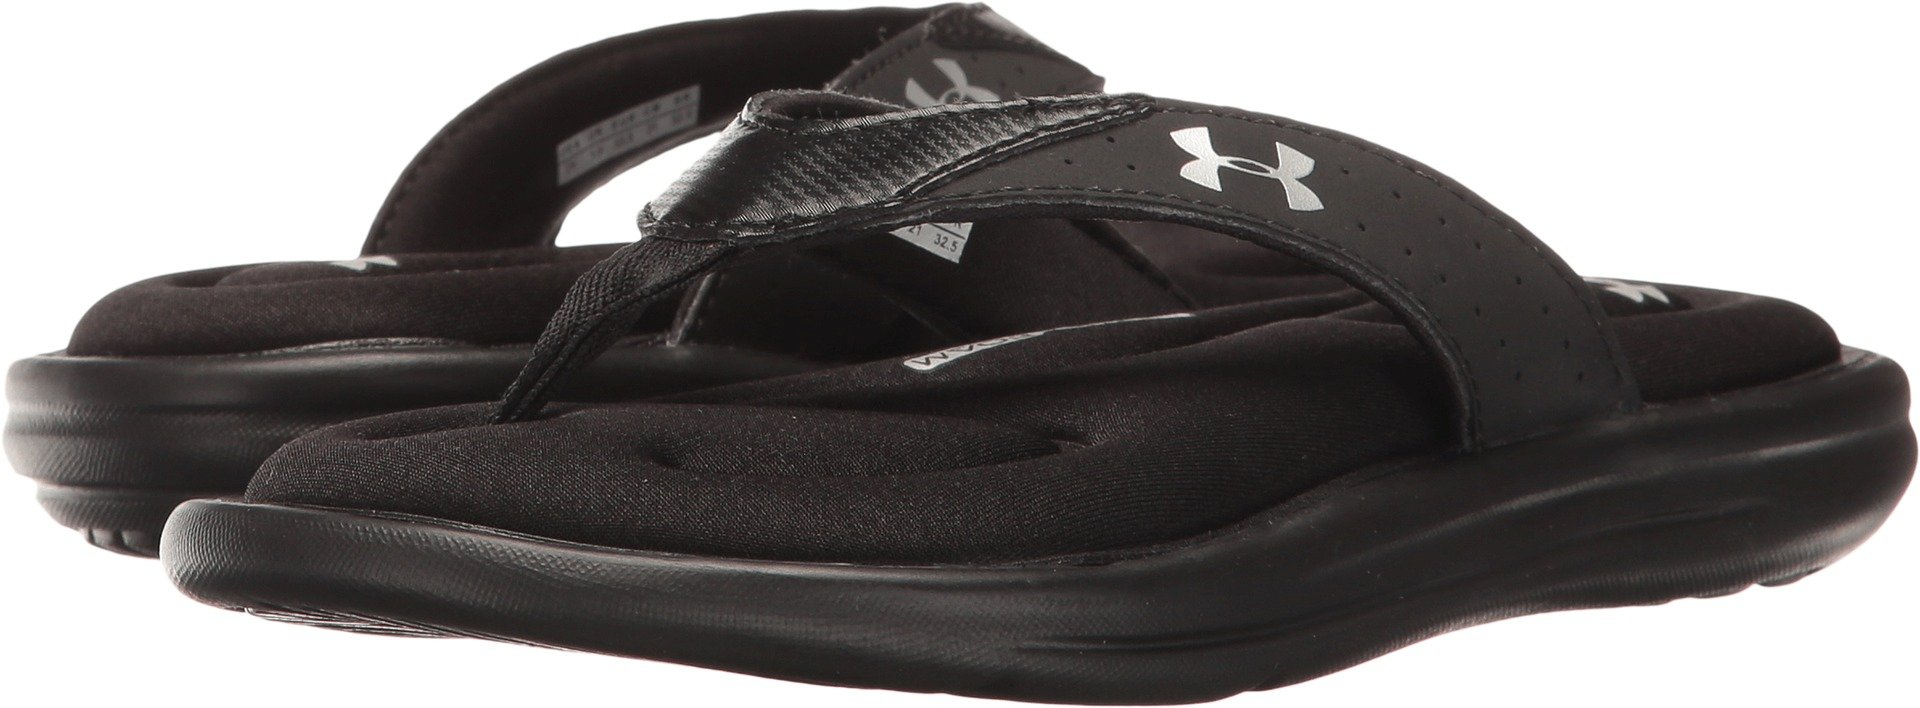 Under Armour Kids Girl's UA Marbella V T (Little Kid/Big Kid) Black/Metallic Silver Sandal